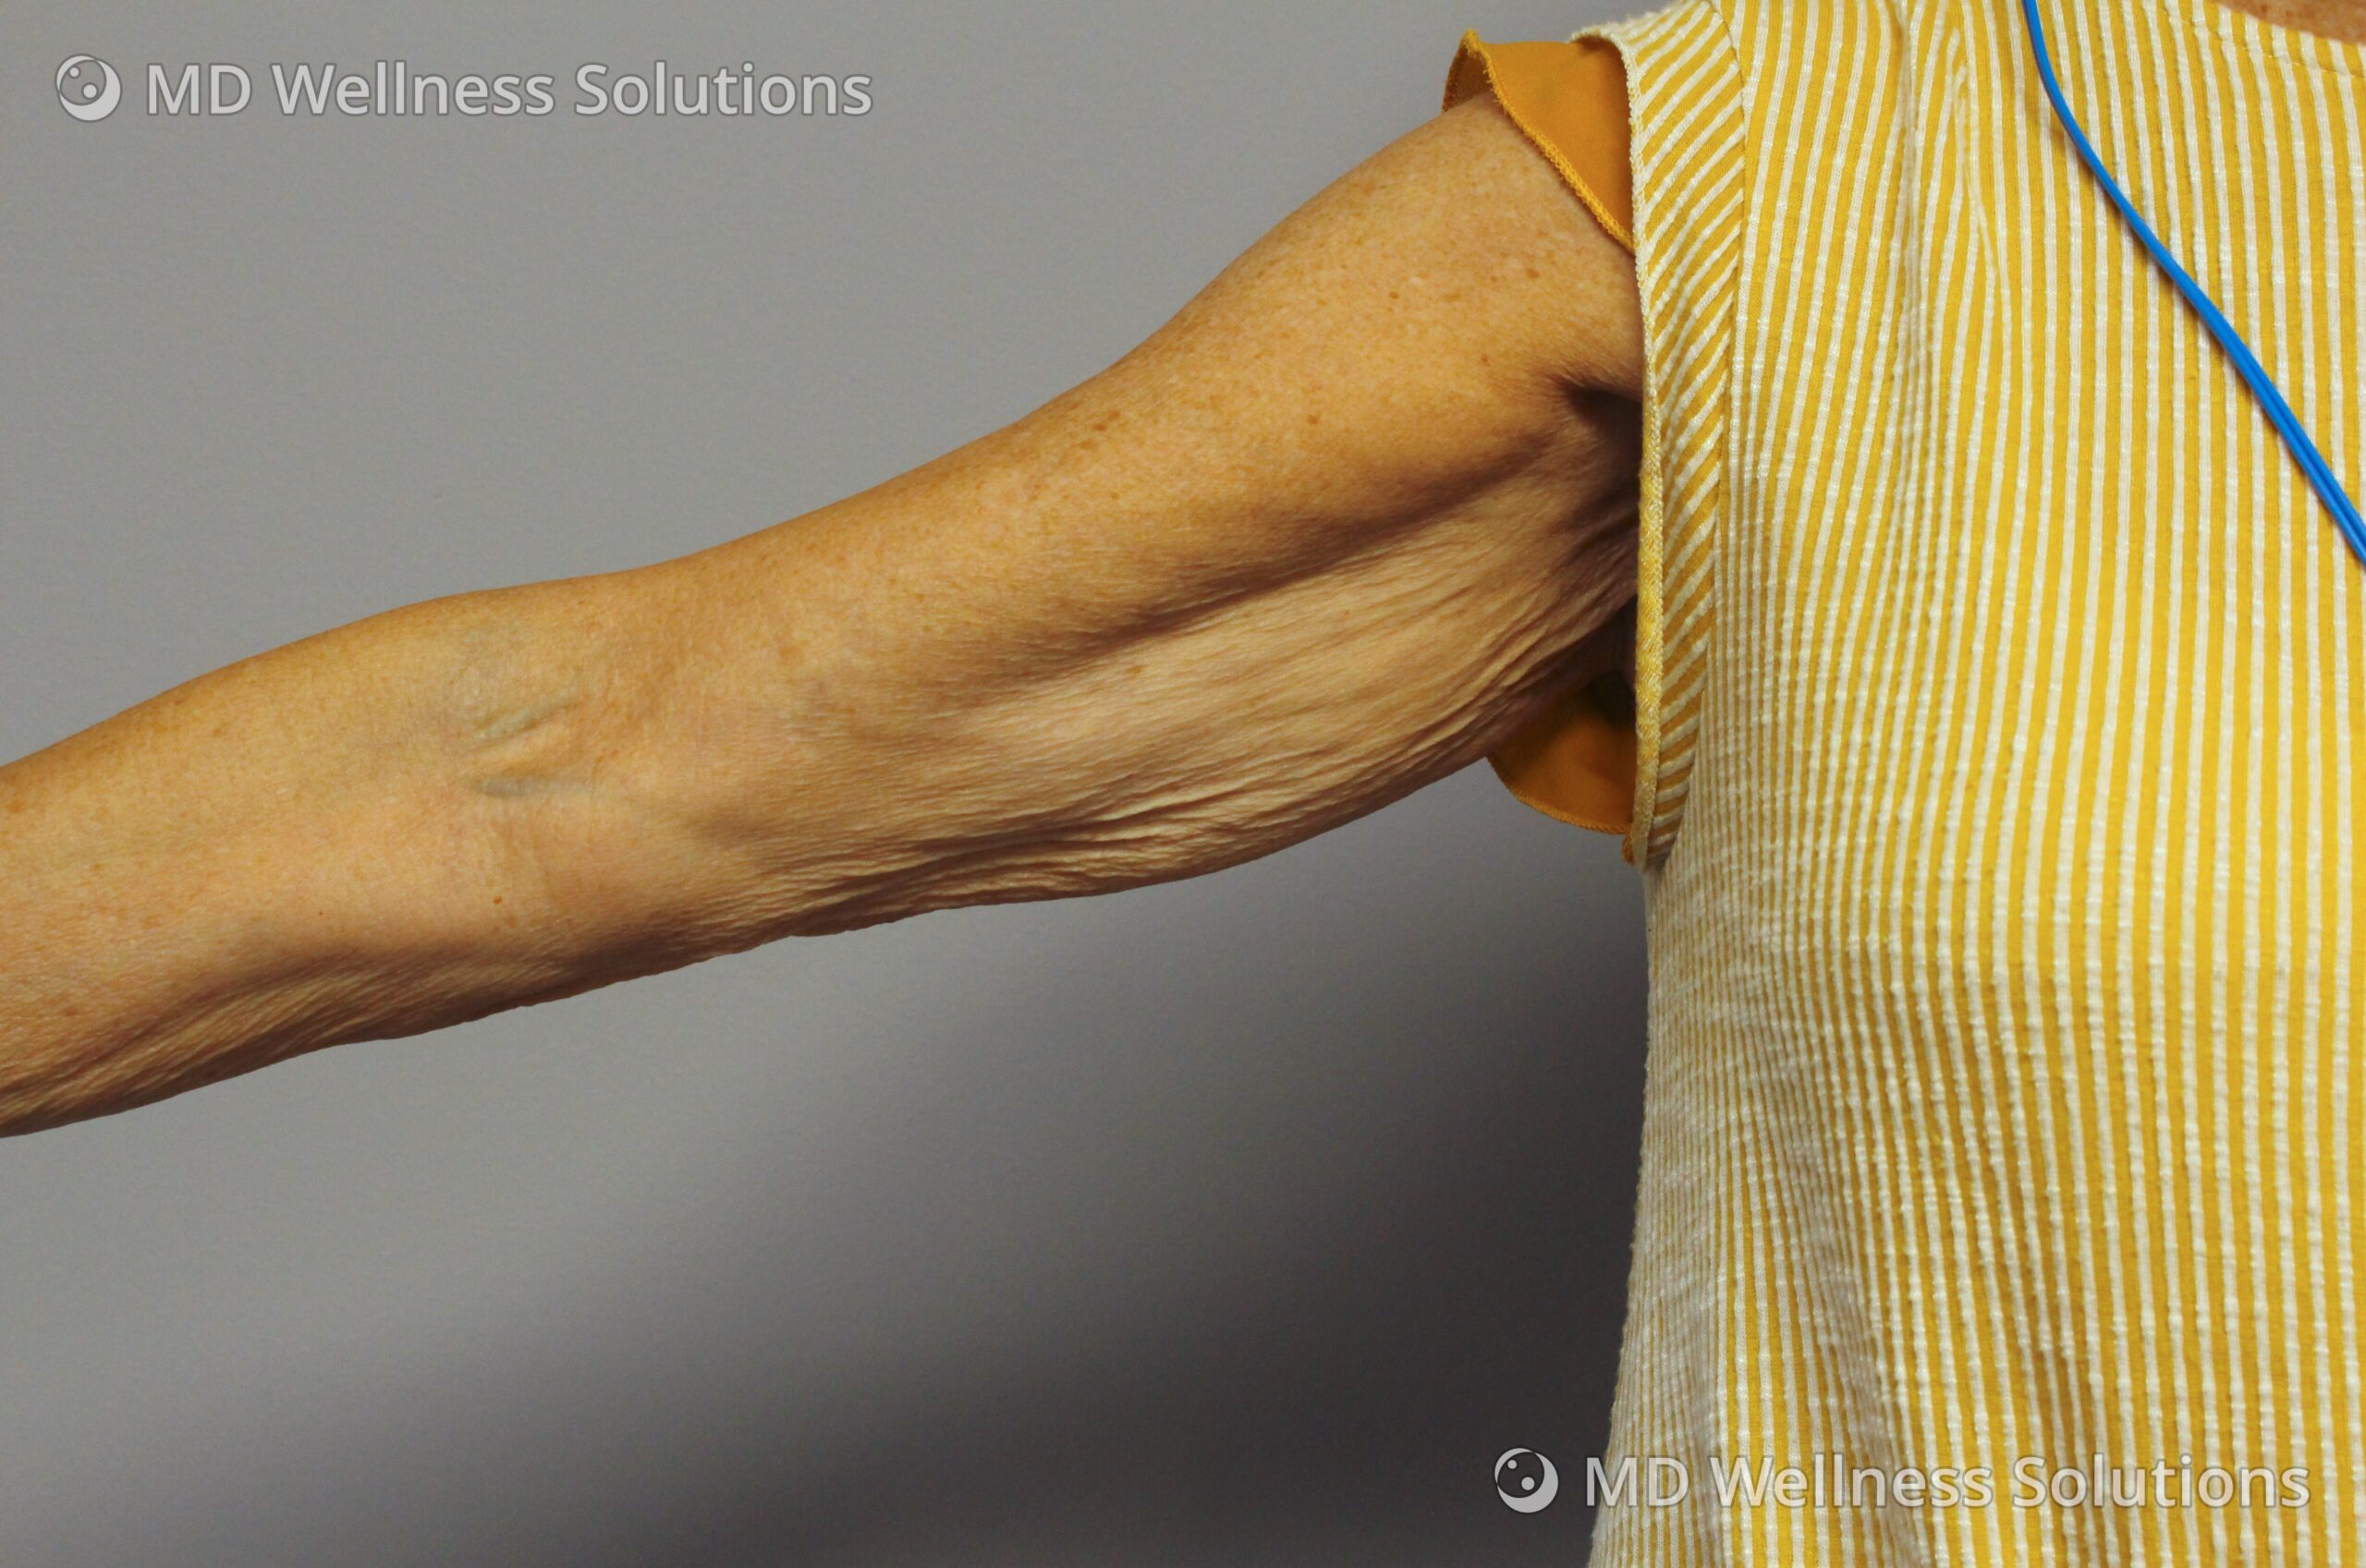 65-74 year old woman before FlexSure body contouring treatment